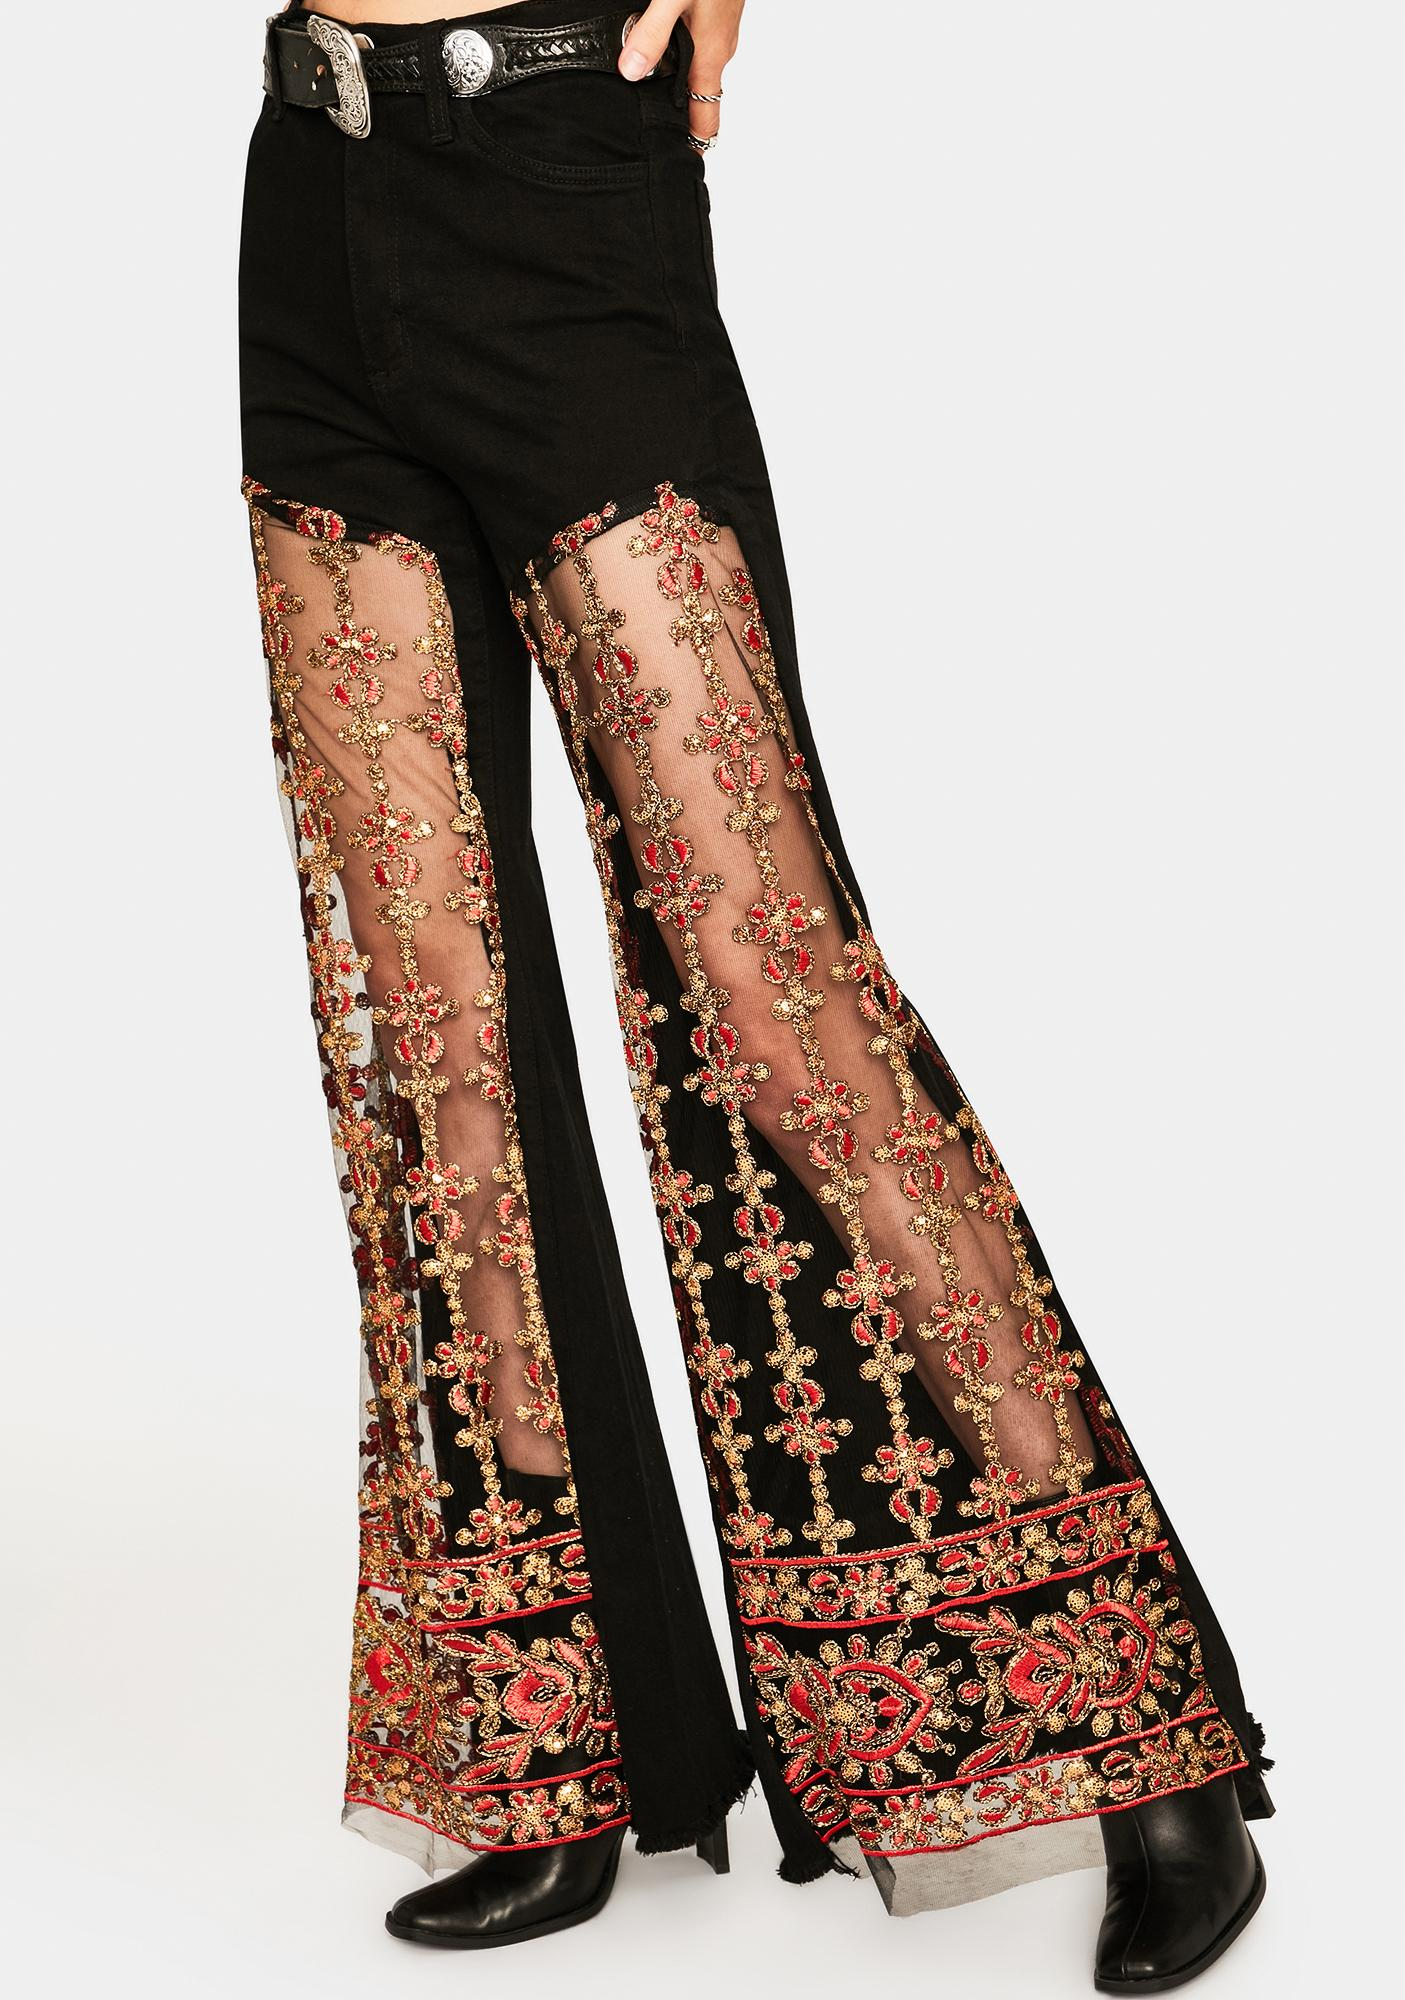 Lace Lassy Embroidered Jeans